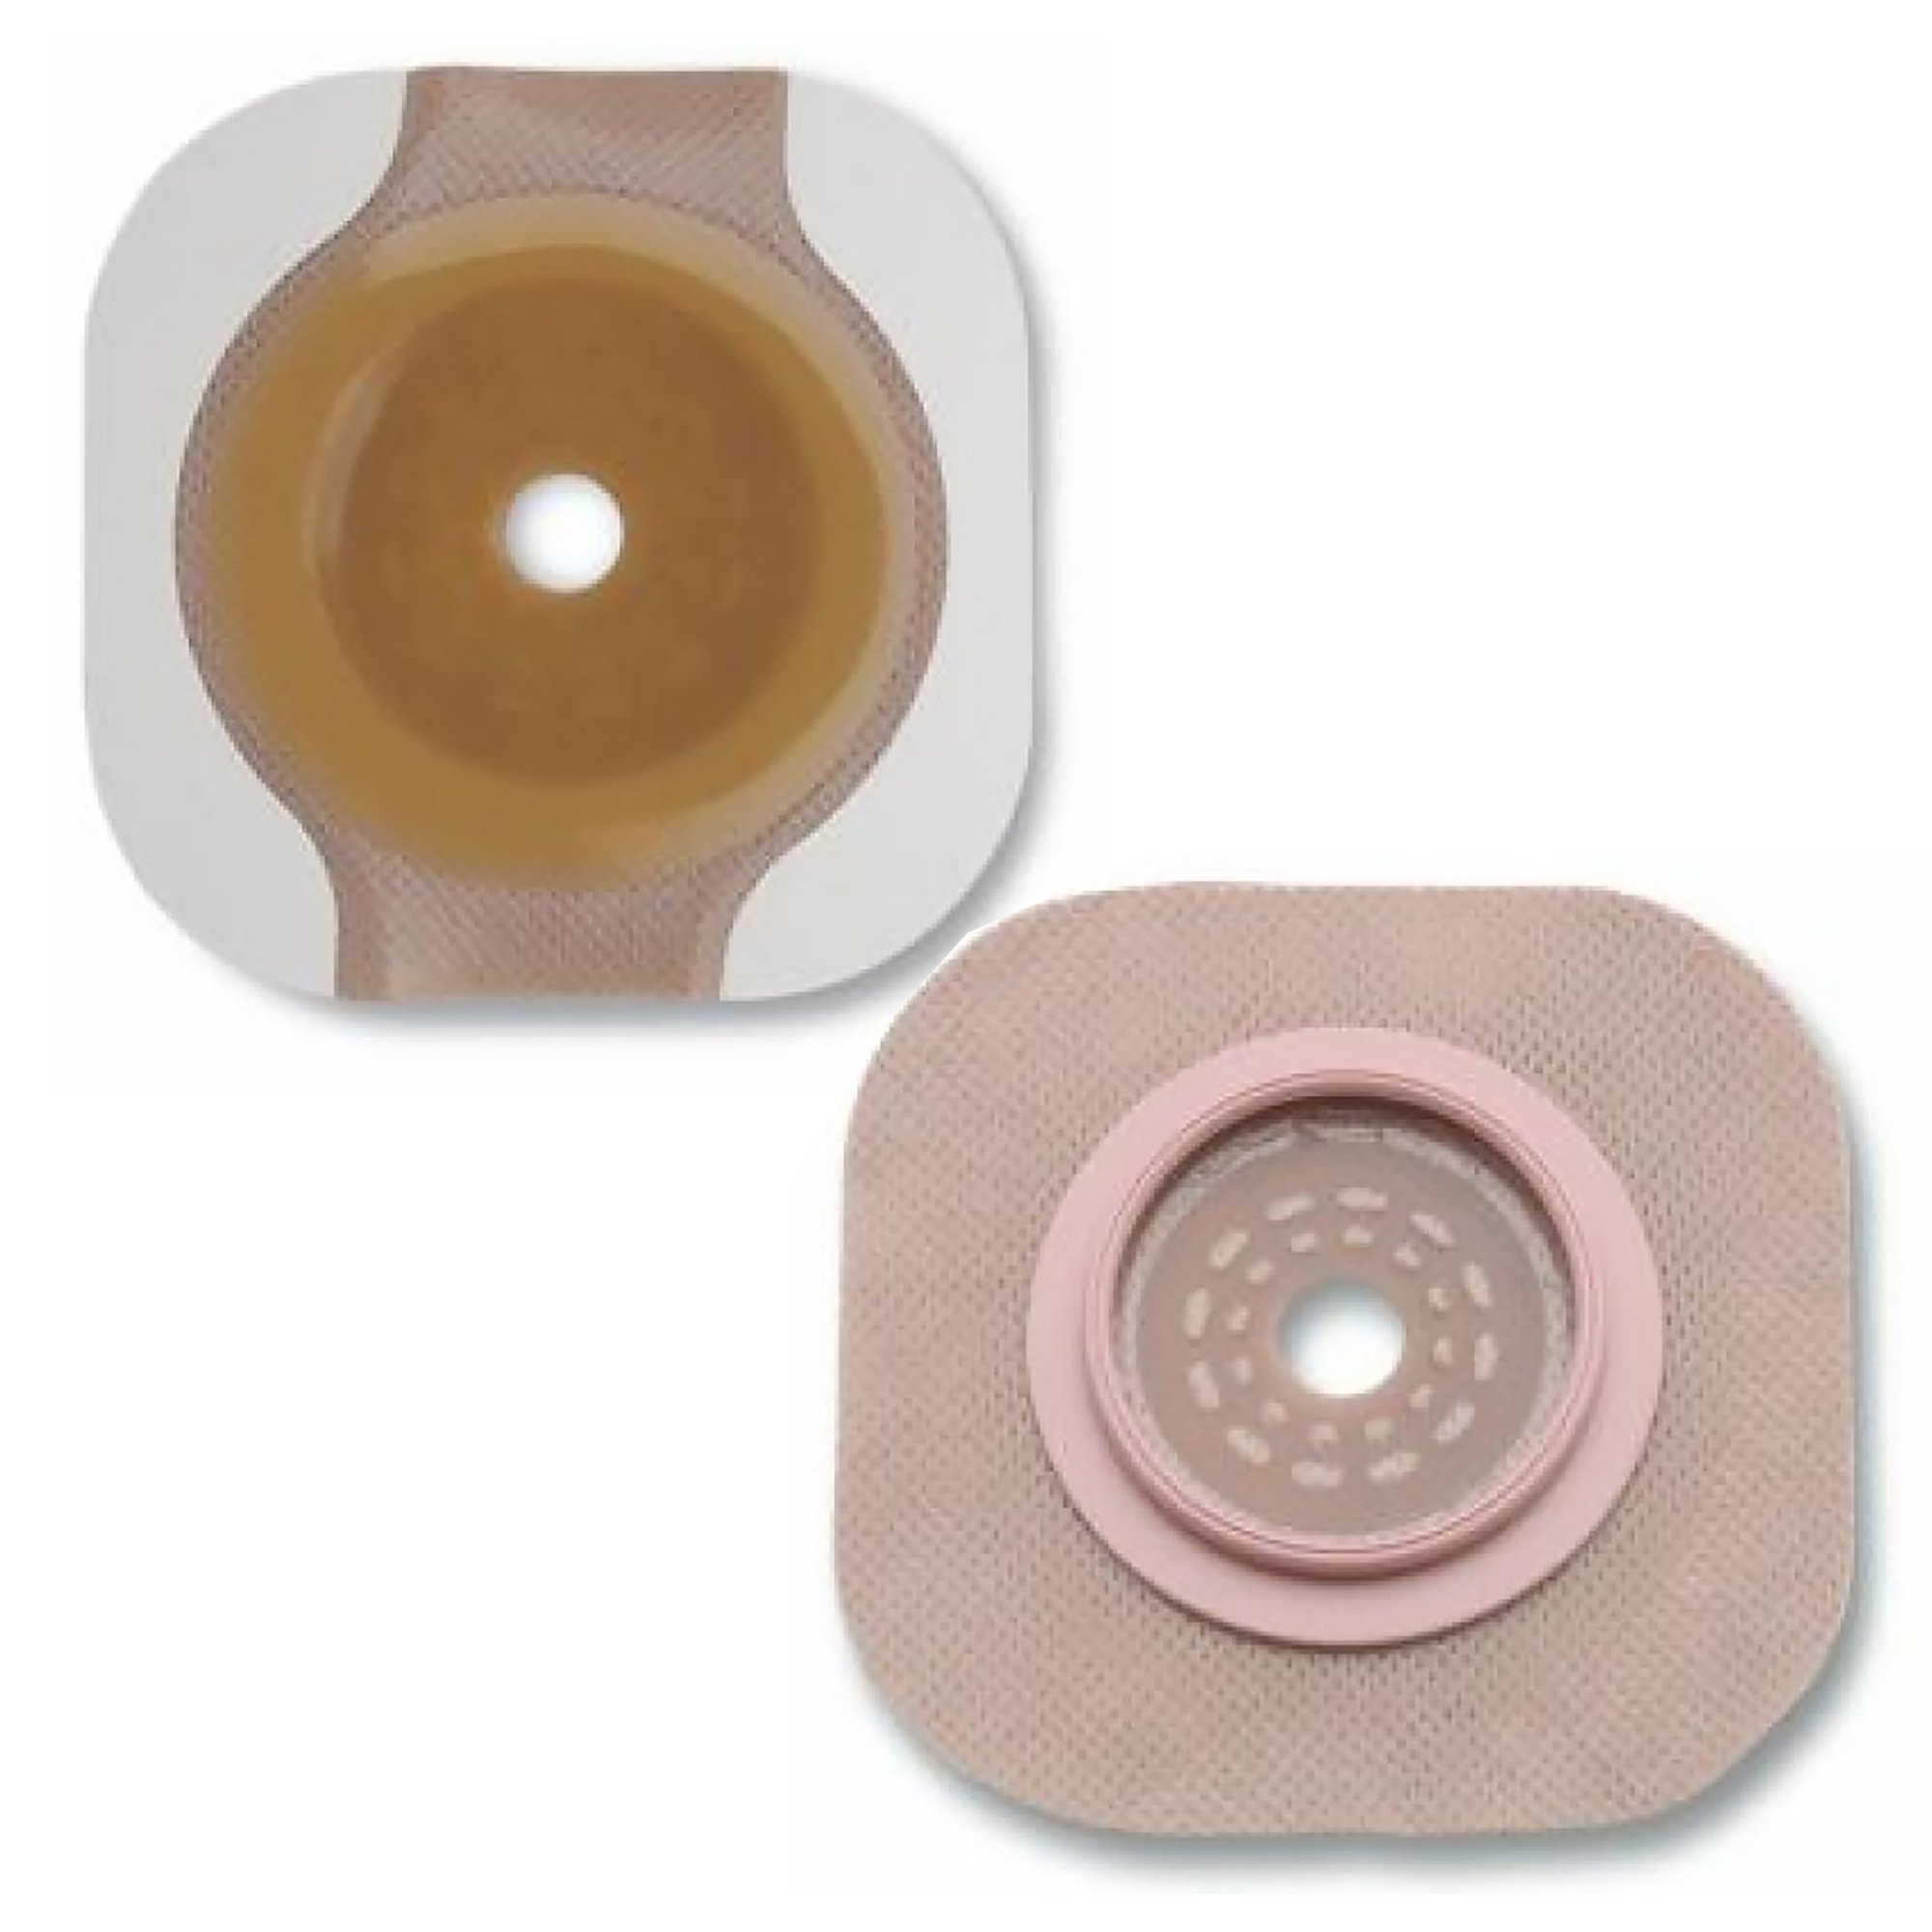 New Image Flextend Ostomy Barrier, Trim to Fit, 44 mm Flange, 14602, Box of 5